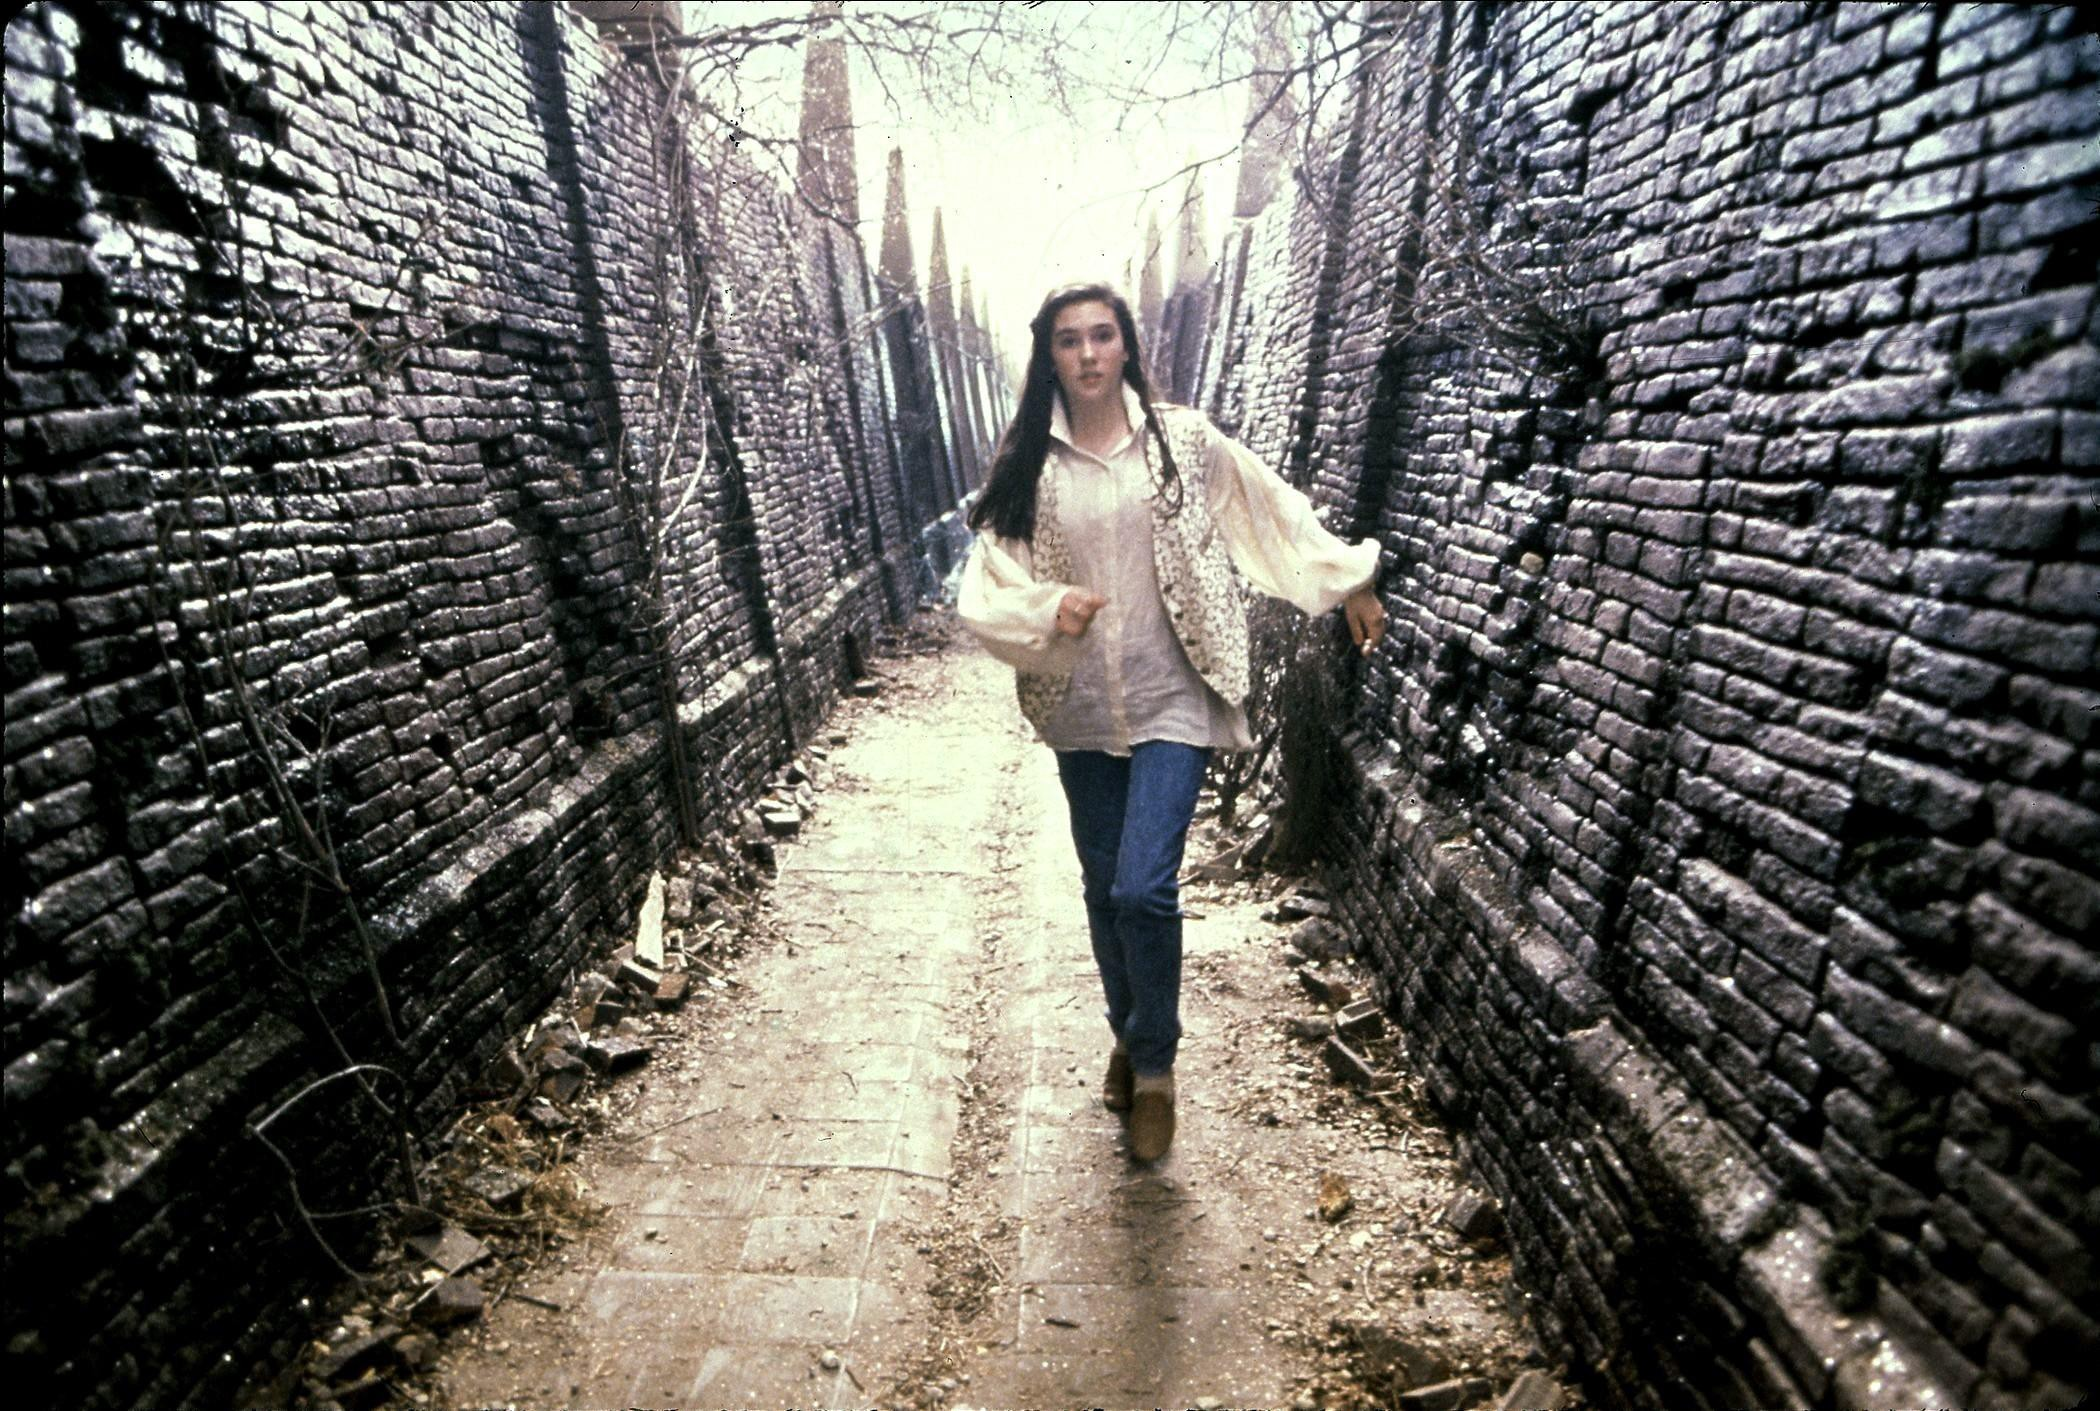 A scene from the movie Labyrinth: A young, white woman in a white poet's blouse, vest, and jeans runs along a desolate labyrinth hallway with broken bricks and dead vines on an overcast day.